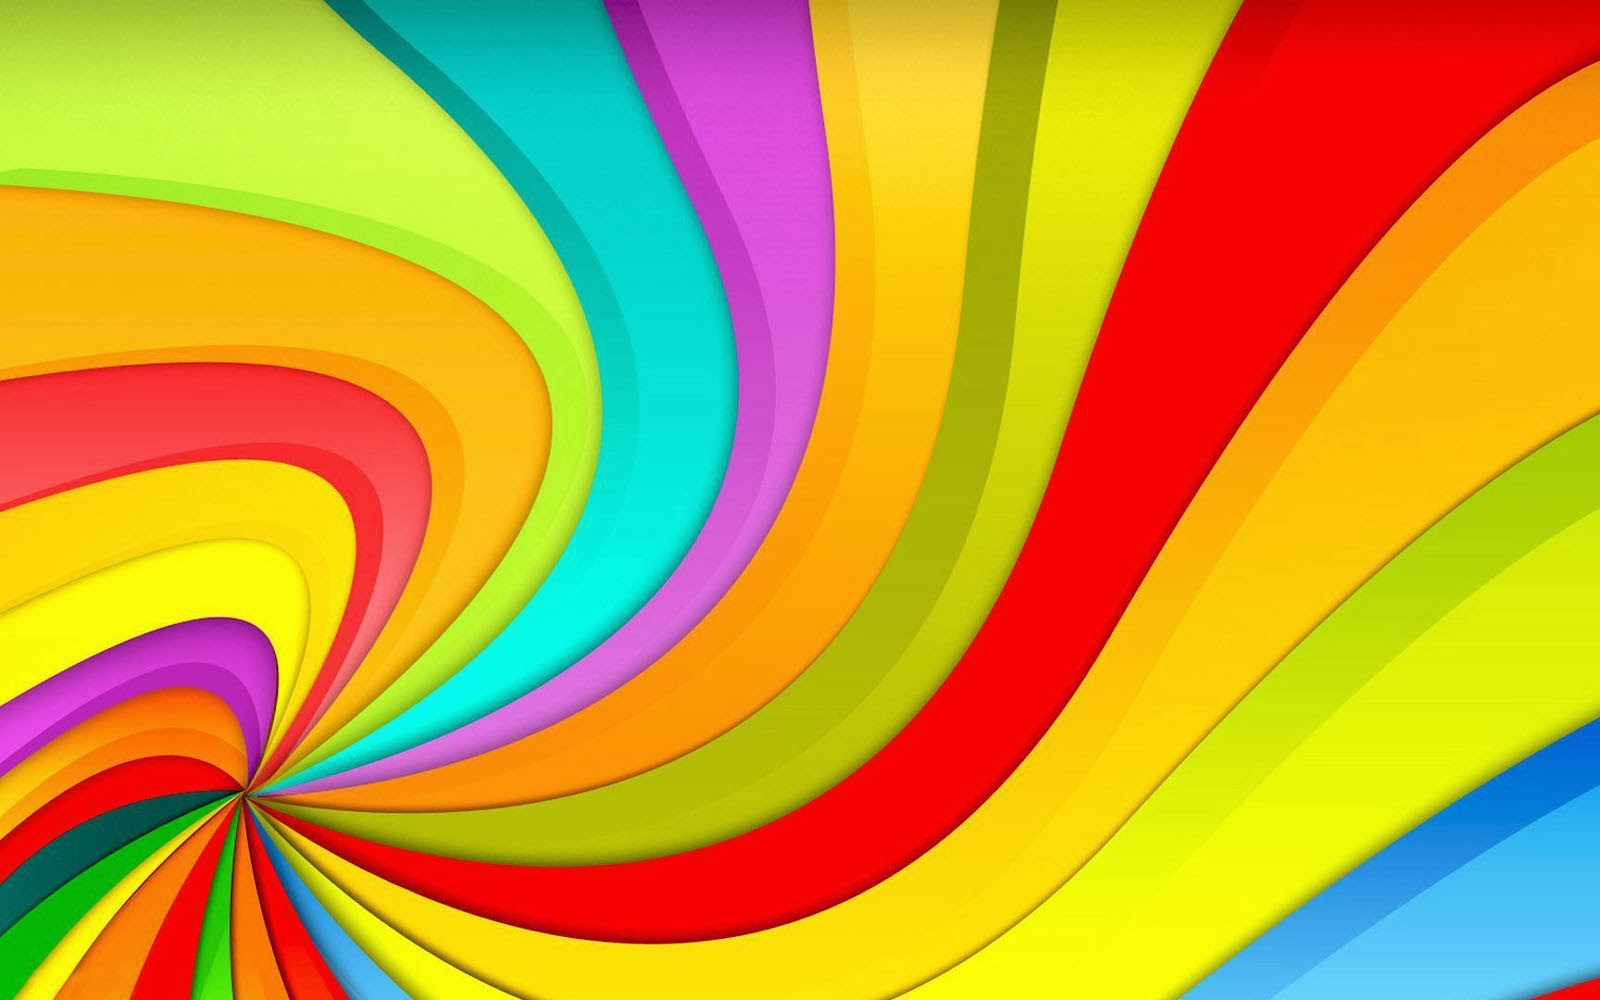 wallpapers Colorful Swirls Wallpapers 1600x1000